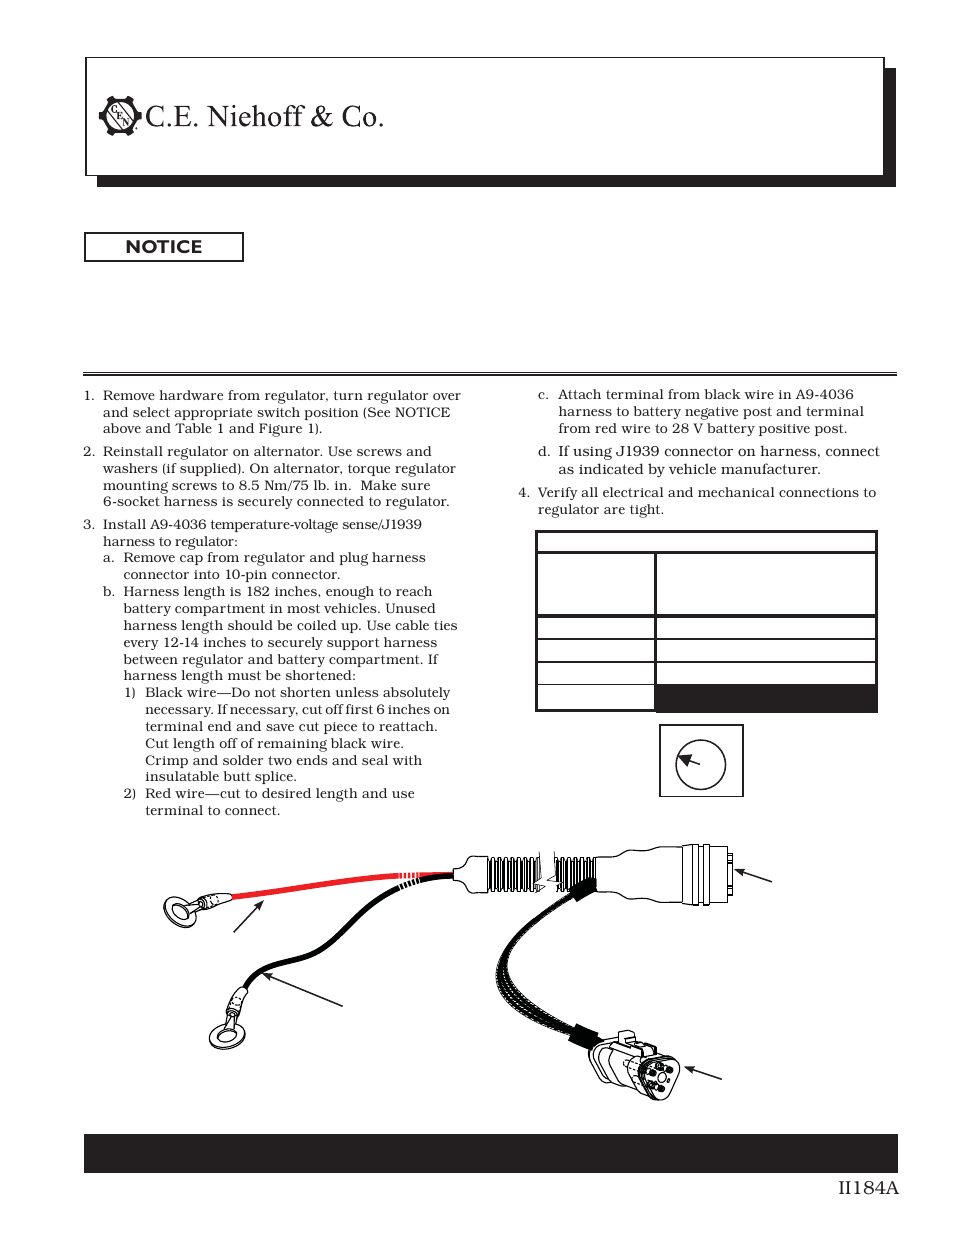 hight resolution of a9 4036 tv j1939 harness installation user manual 1 page